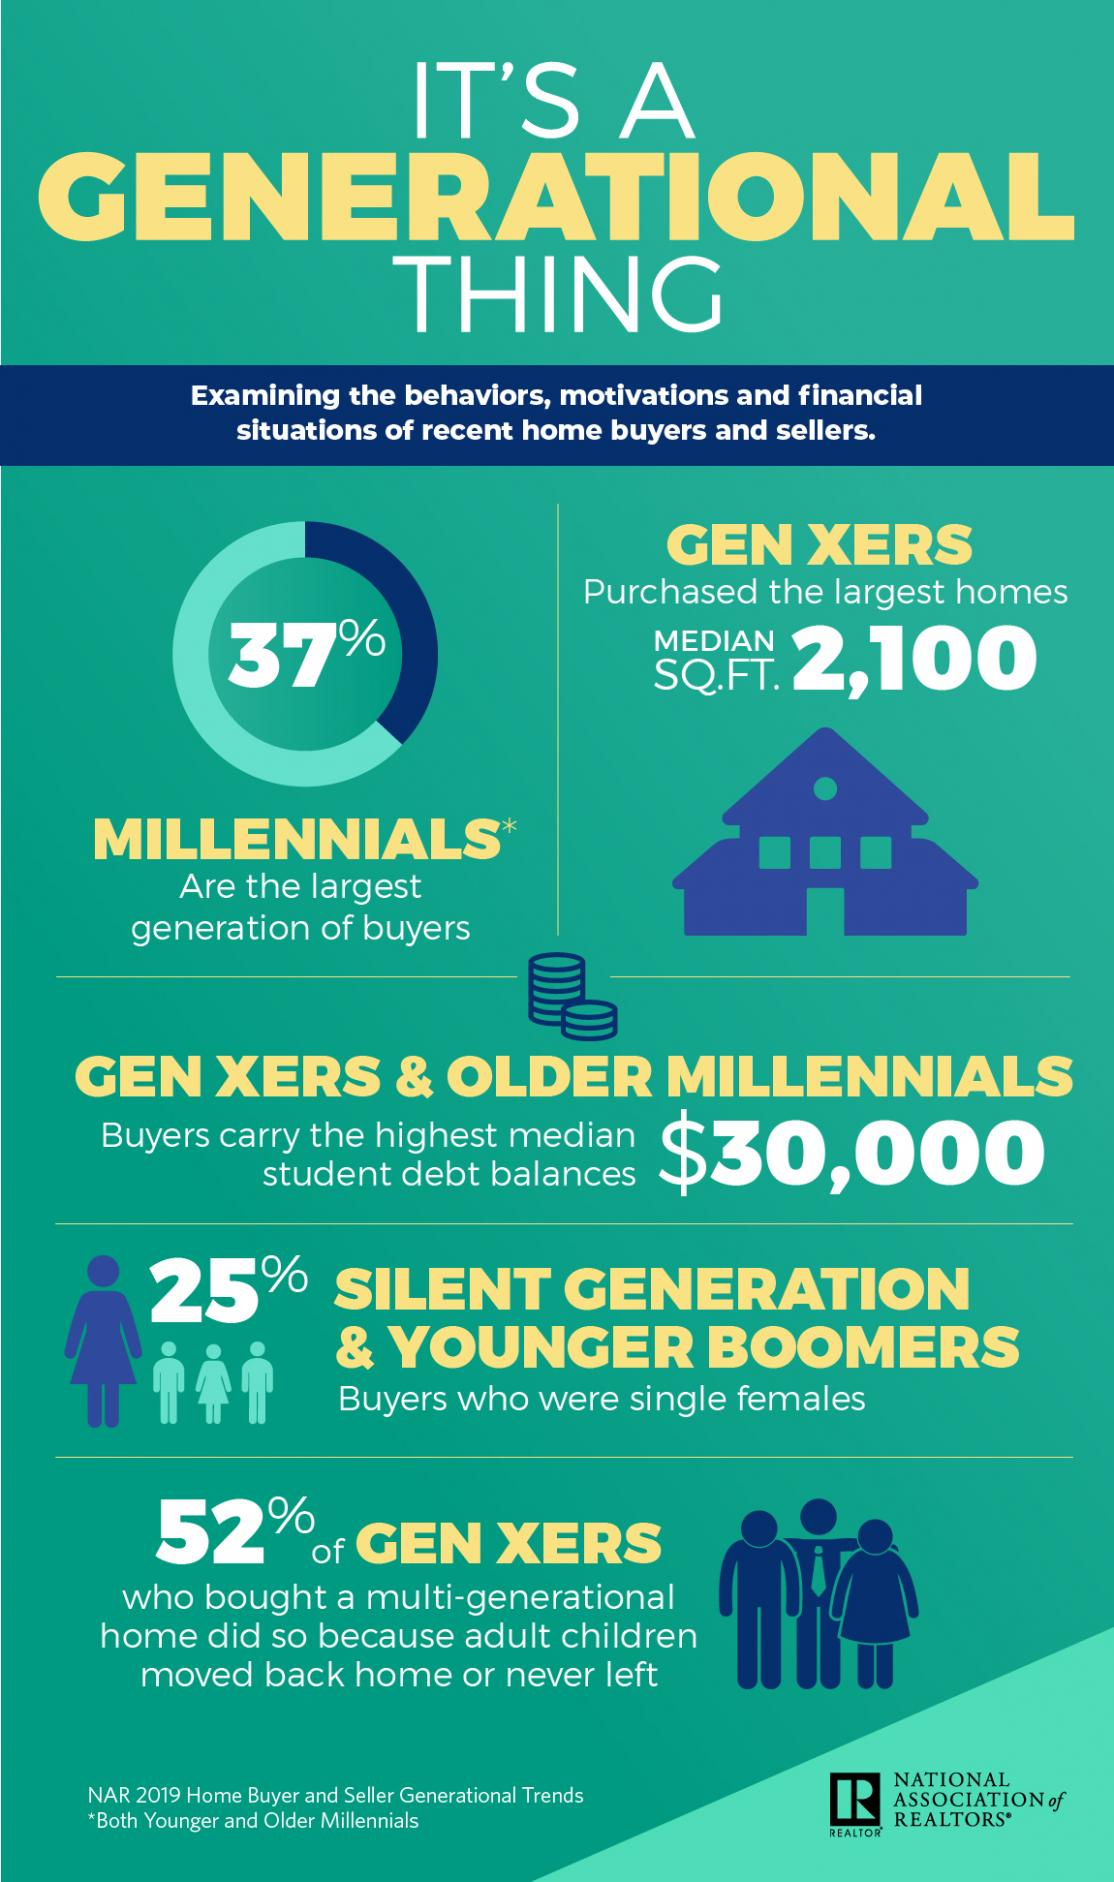 2019 Generational Trends infographic. Visit source link at the end of the article for more information.